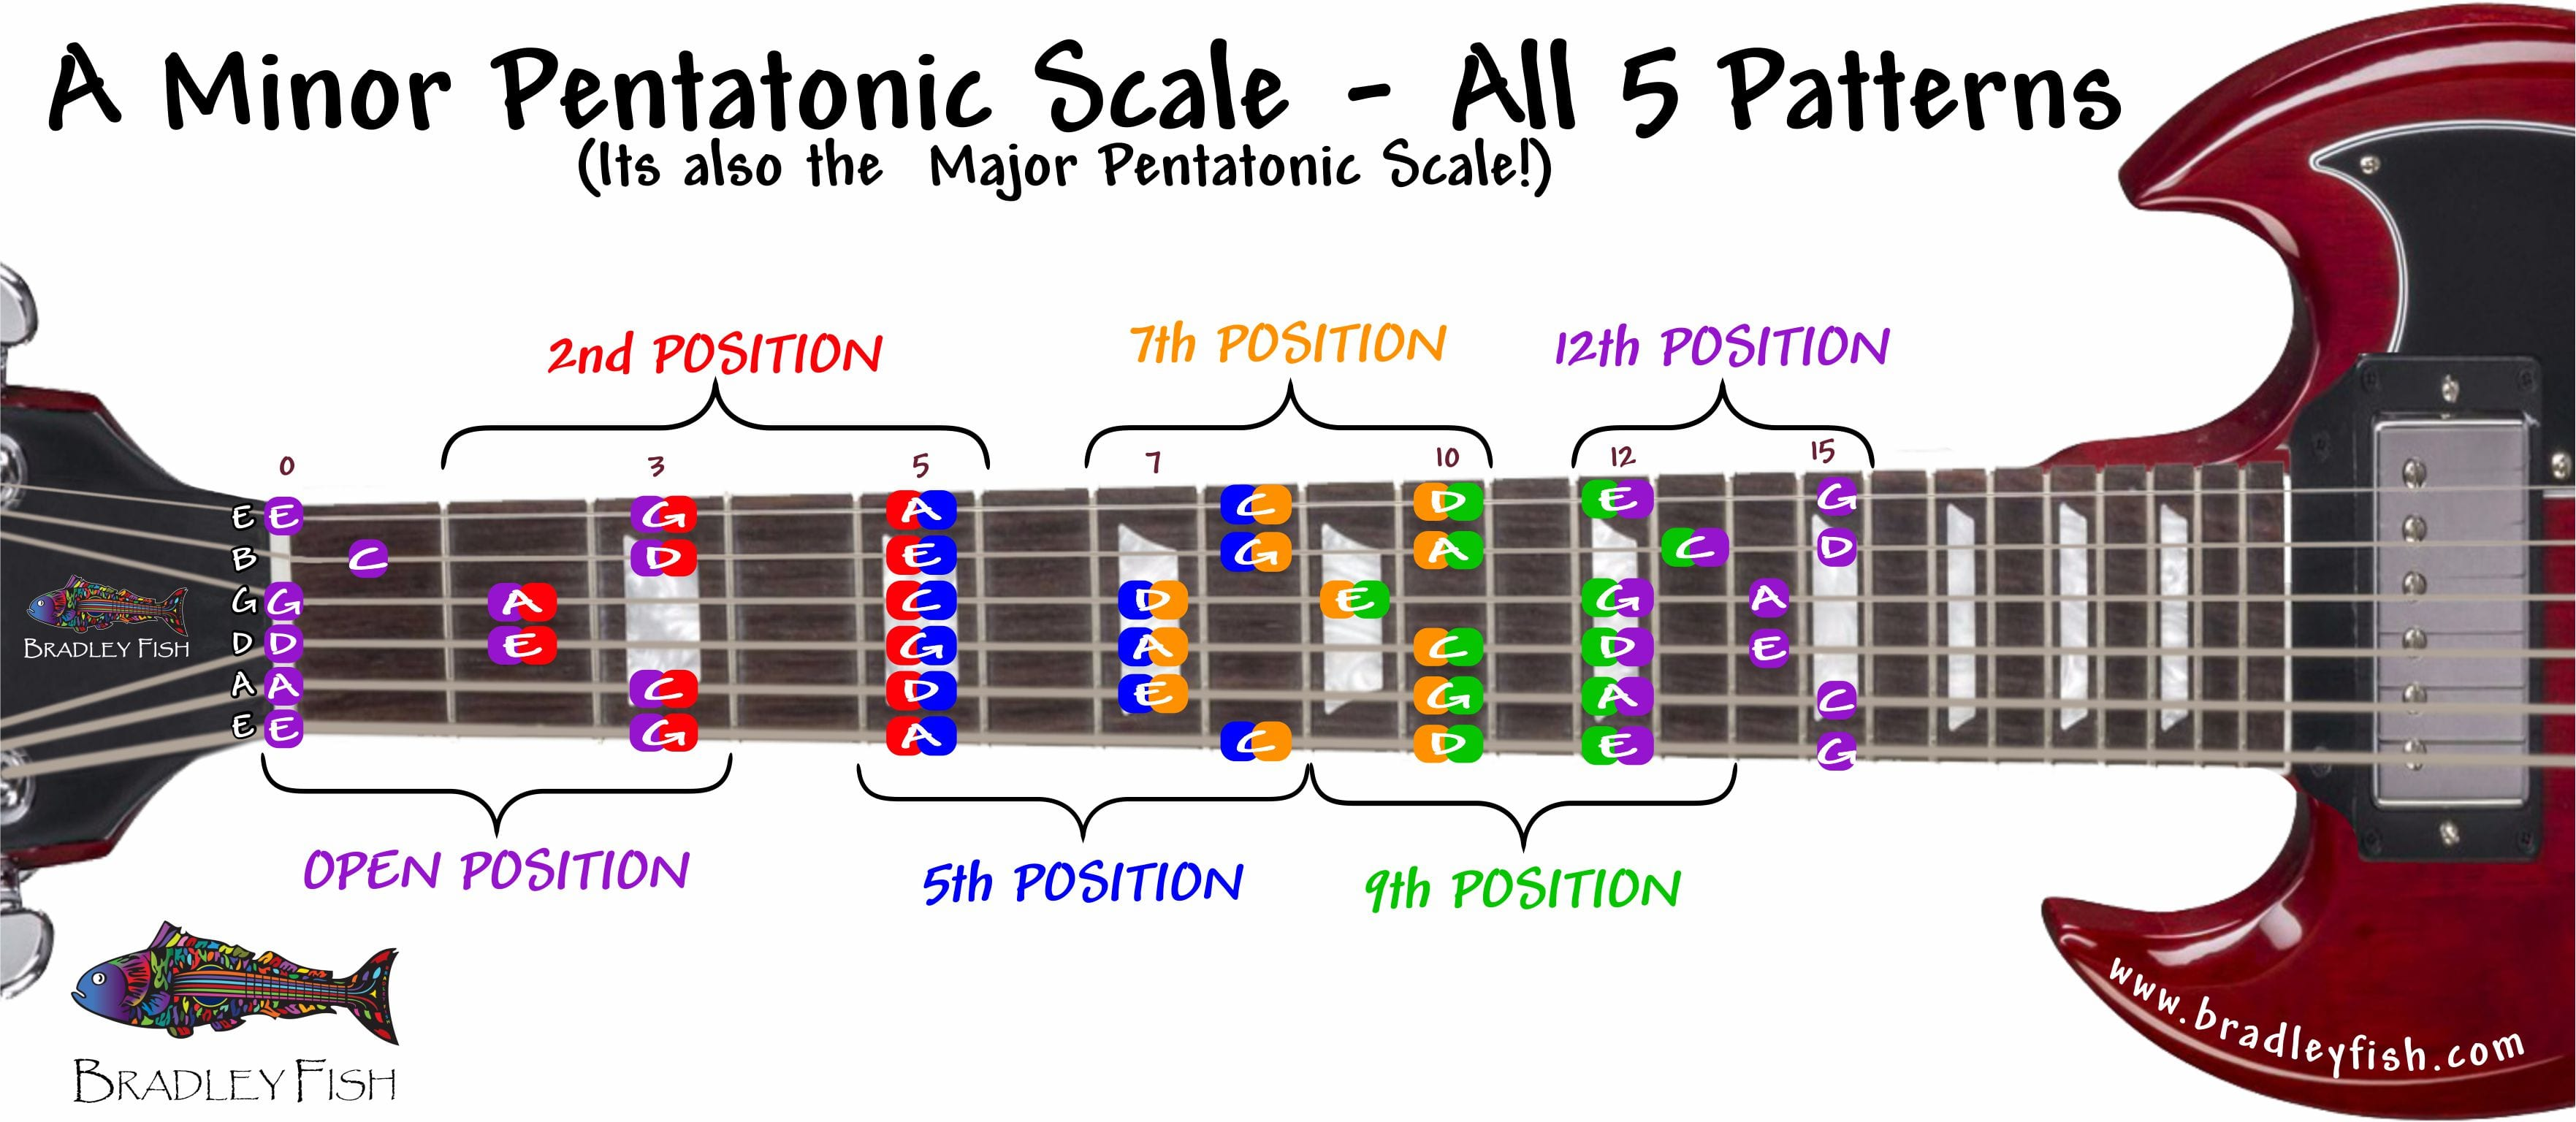 image about Guitar Pentatonic Scale Chart Printable called Your Rock Scale the A Tiny Pentatonic Scale